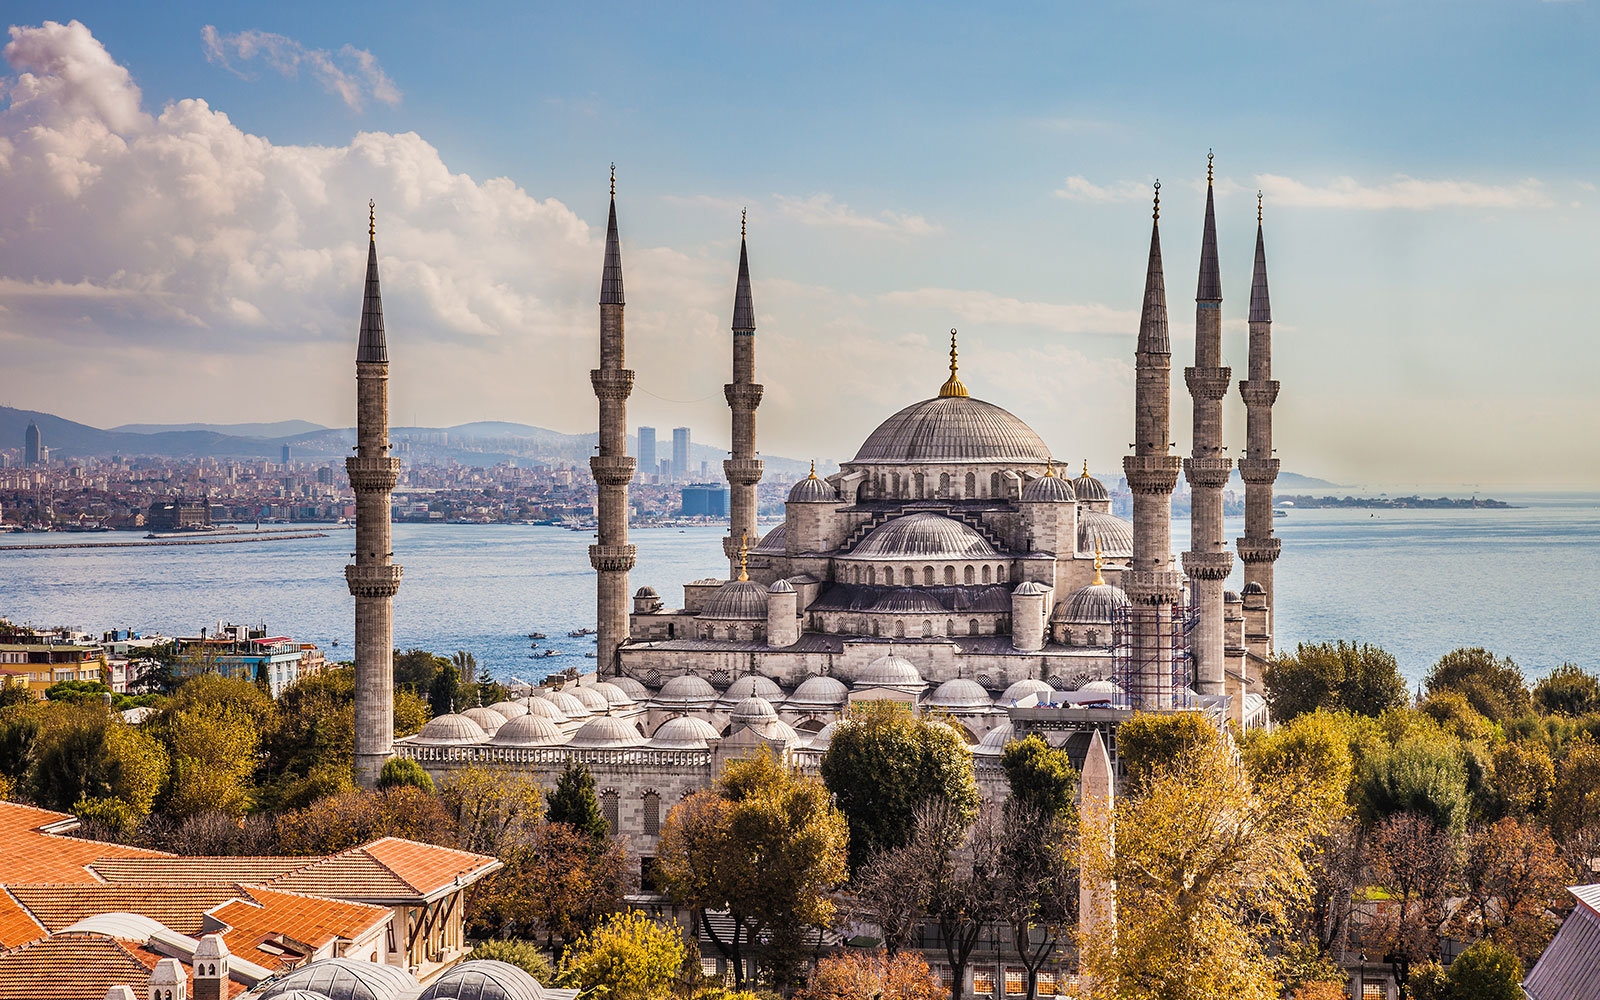 Sultan Ahmet or Blue Mosque in Istanbul, Turkey.